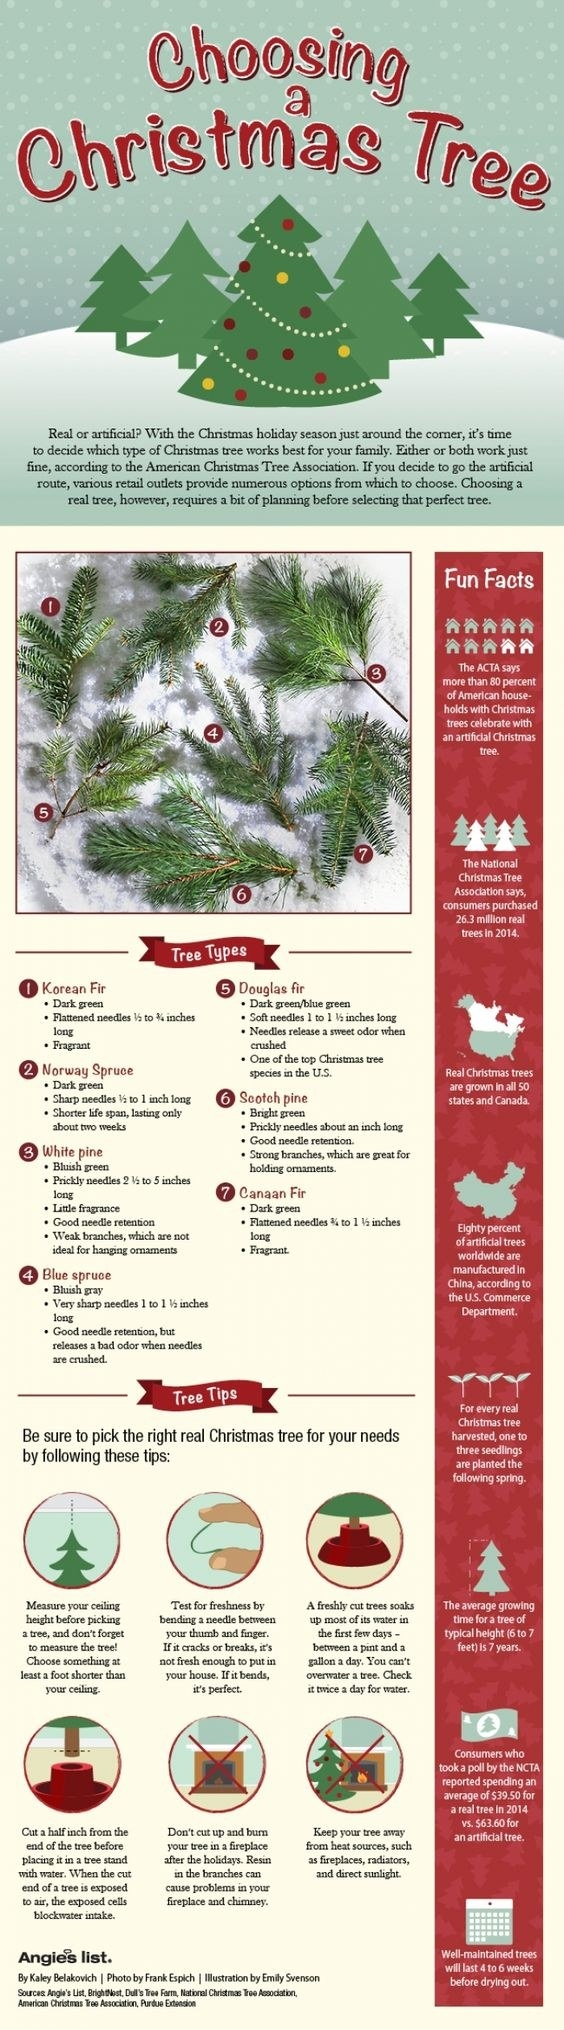 First things first, make sure you pick the right tree for your house.